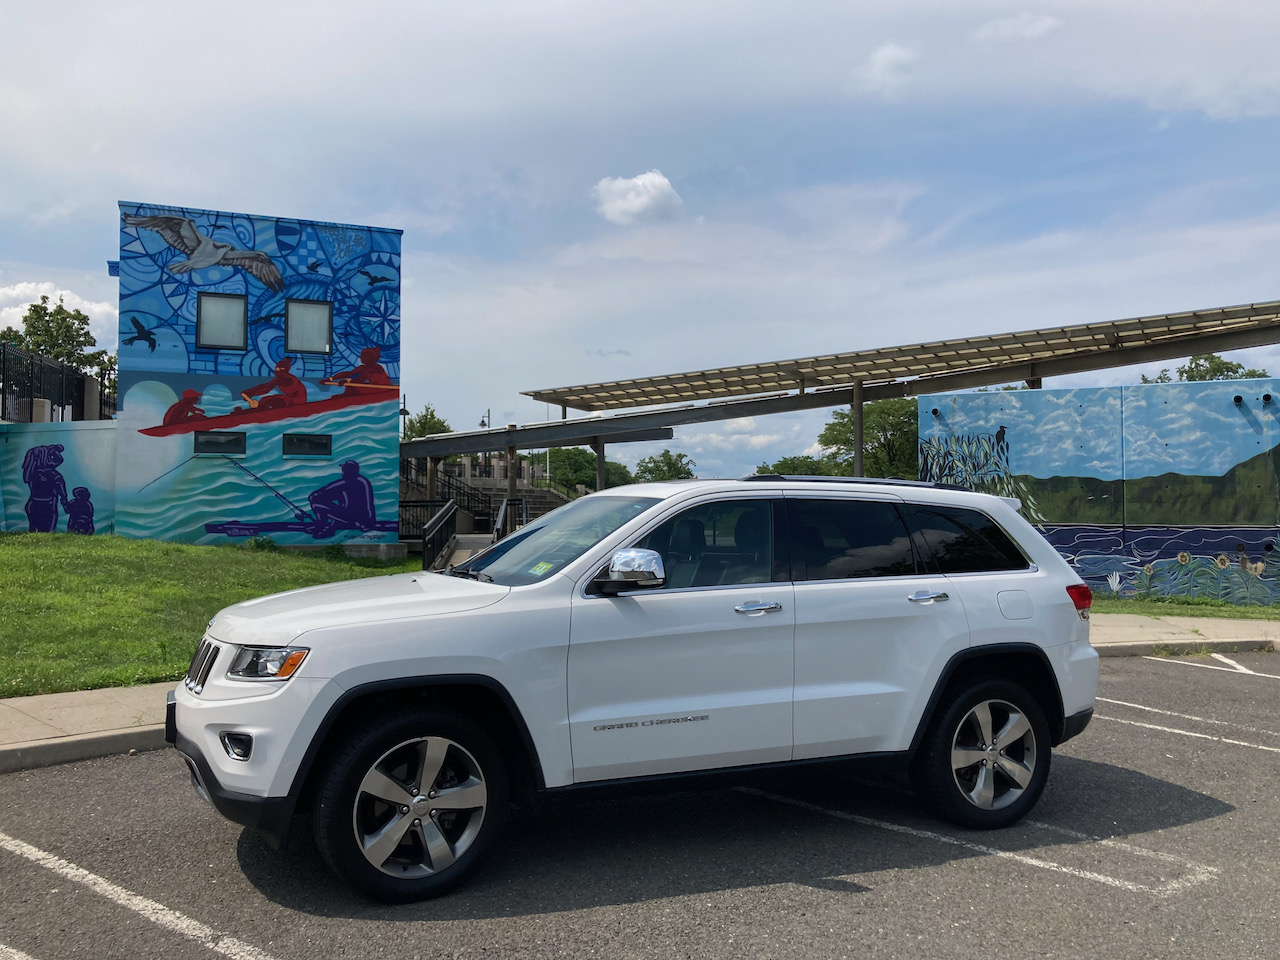 2014 Jeep Grand Cherokee parked in front of Raritan River Ways mural in public park.